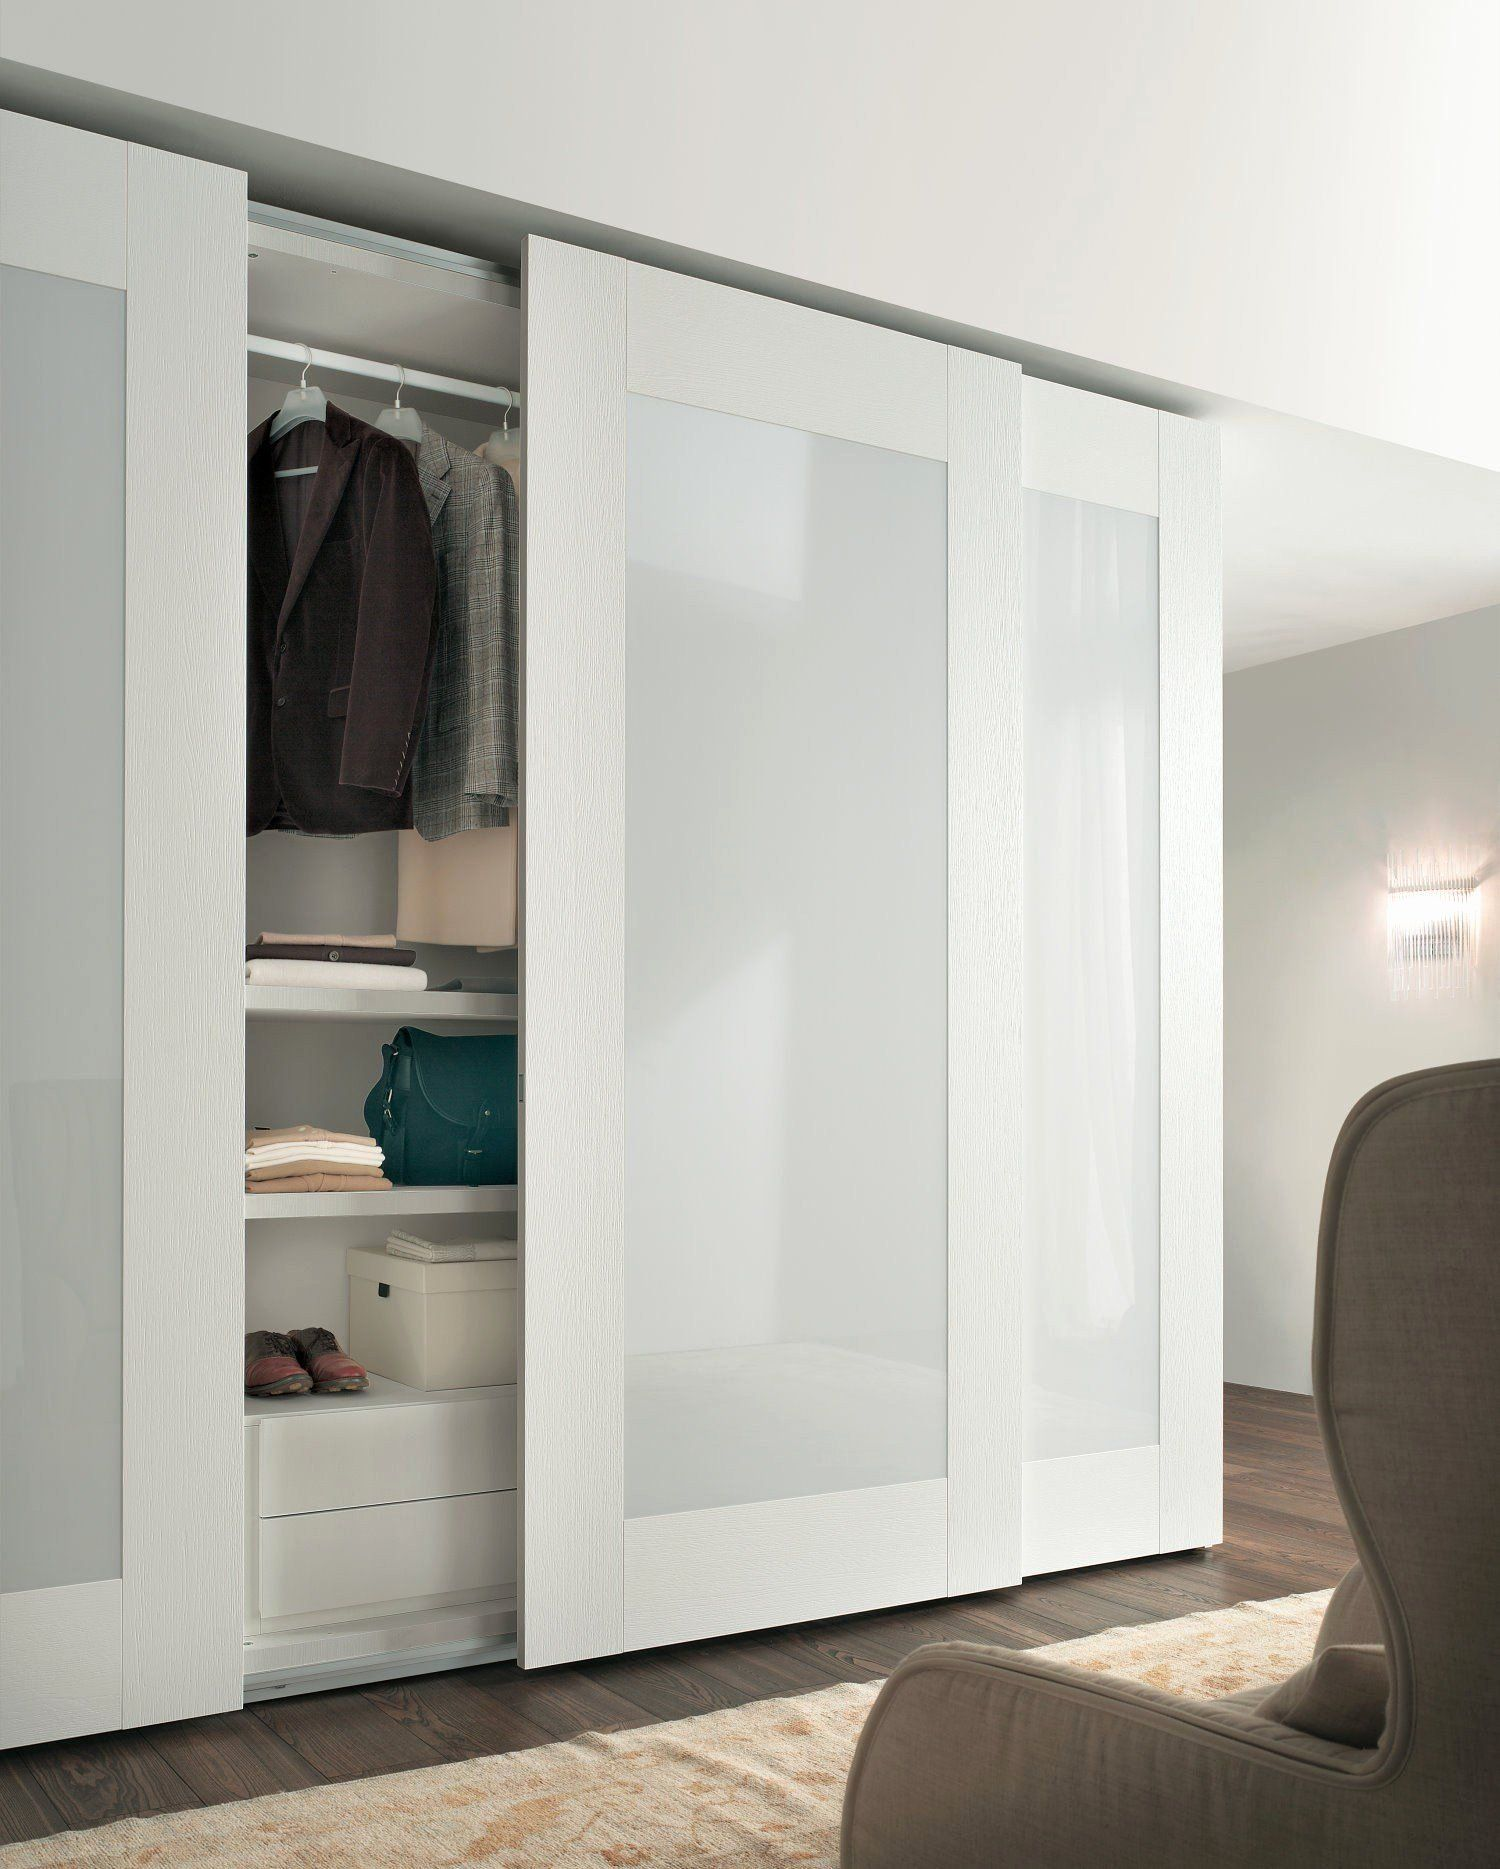 Bedroom Wardrobe Sliding Doors Awesome 20 Best Closet Door Ideas That Won The Internet Stylish In 2020 Modern Closet Doors Glass Closet Glass Closet Doors